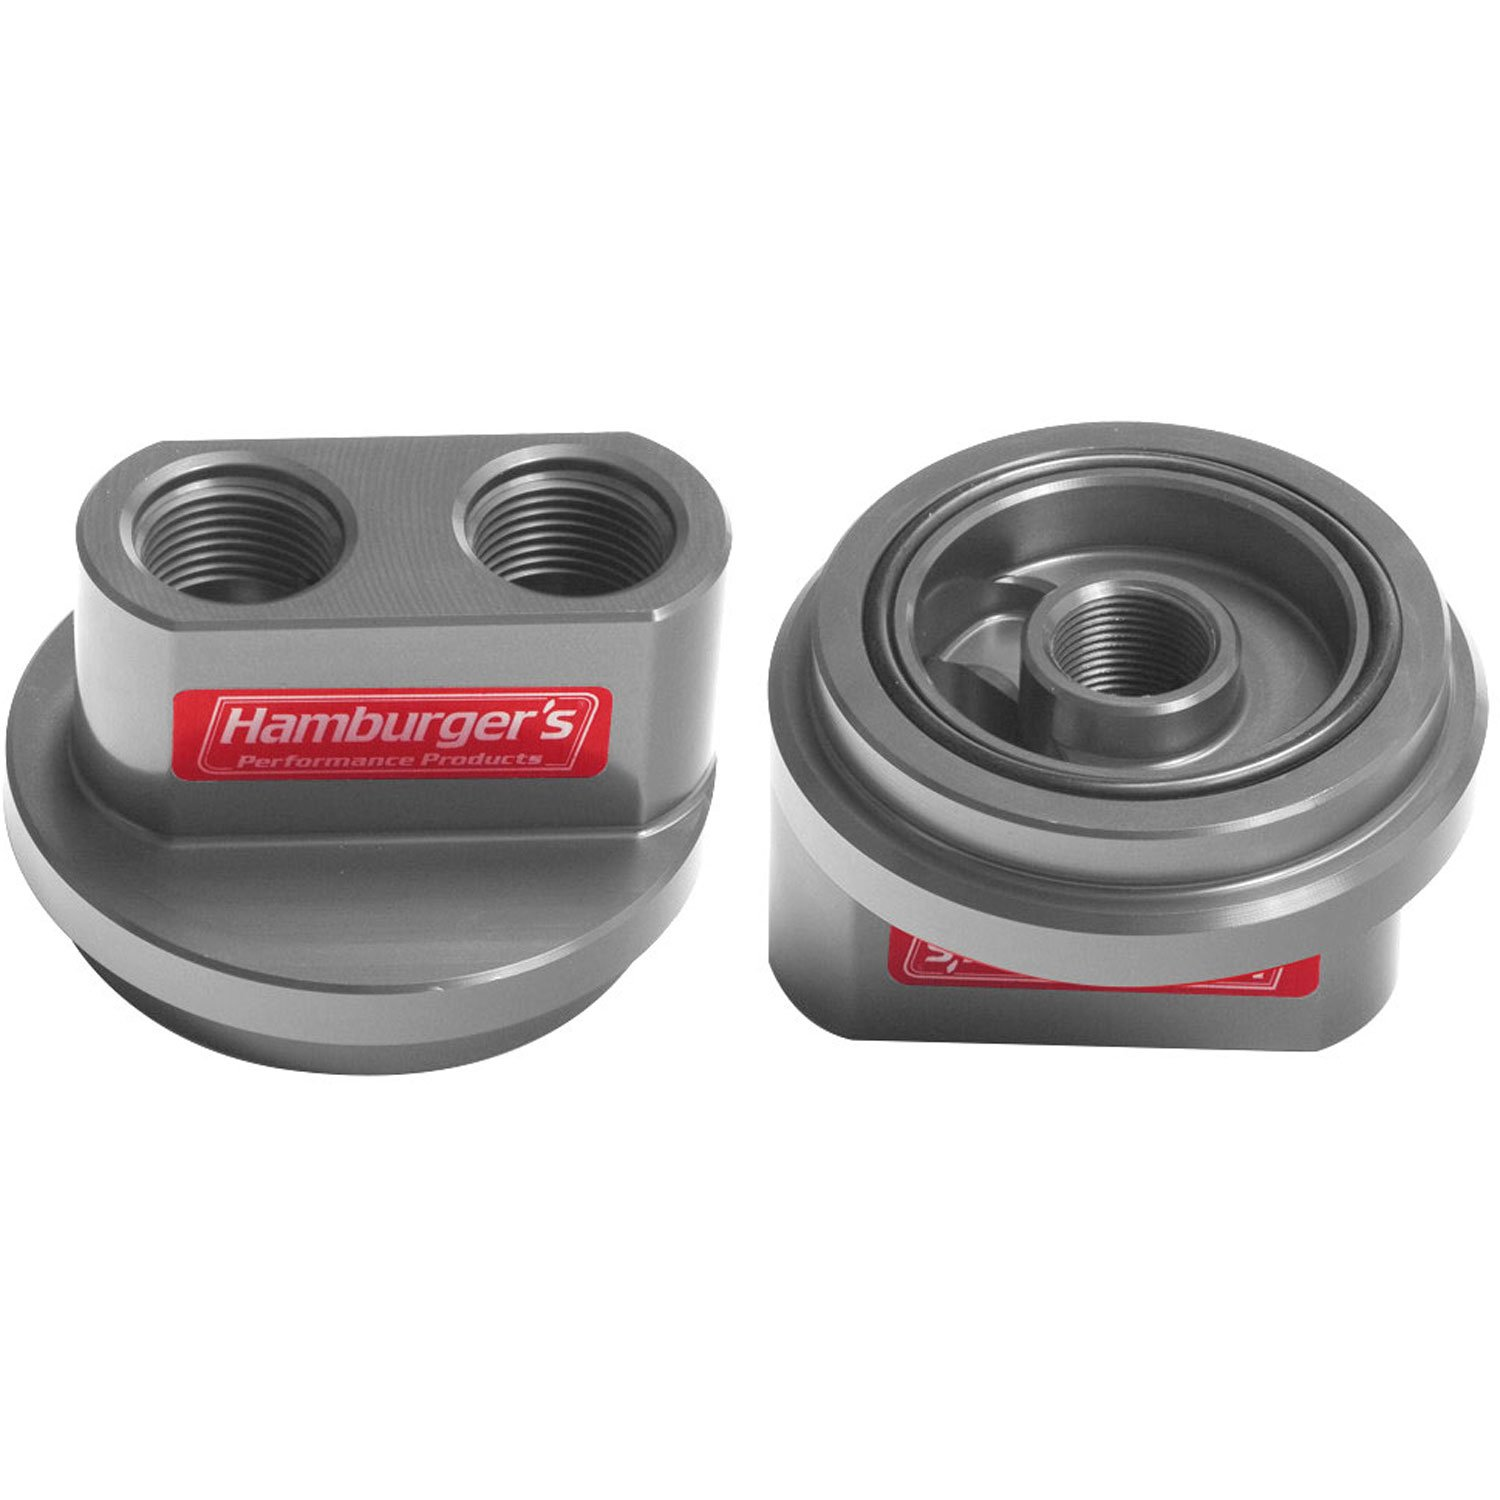 Hamburger's 3324 - Hamburger's Oil Filter Bypass Adapters, Replacement Parts & Accessories